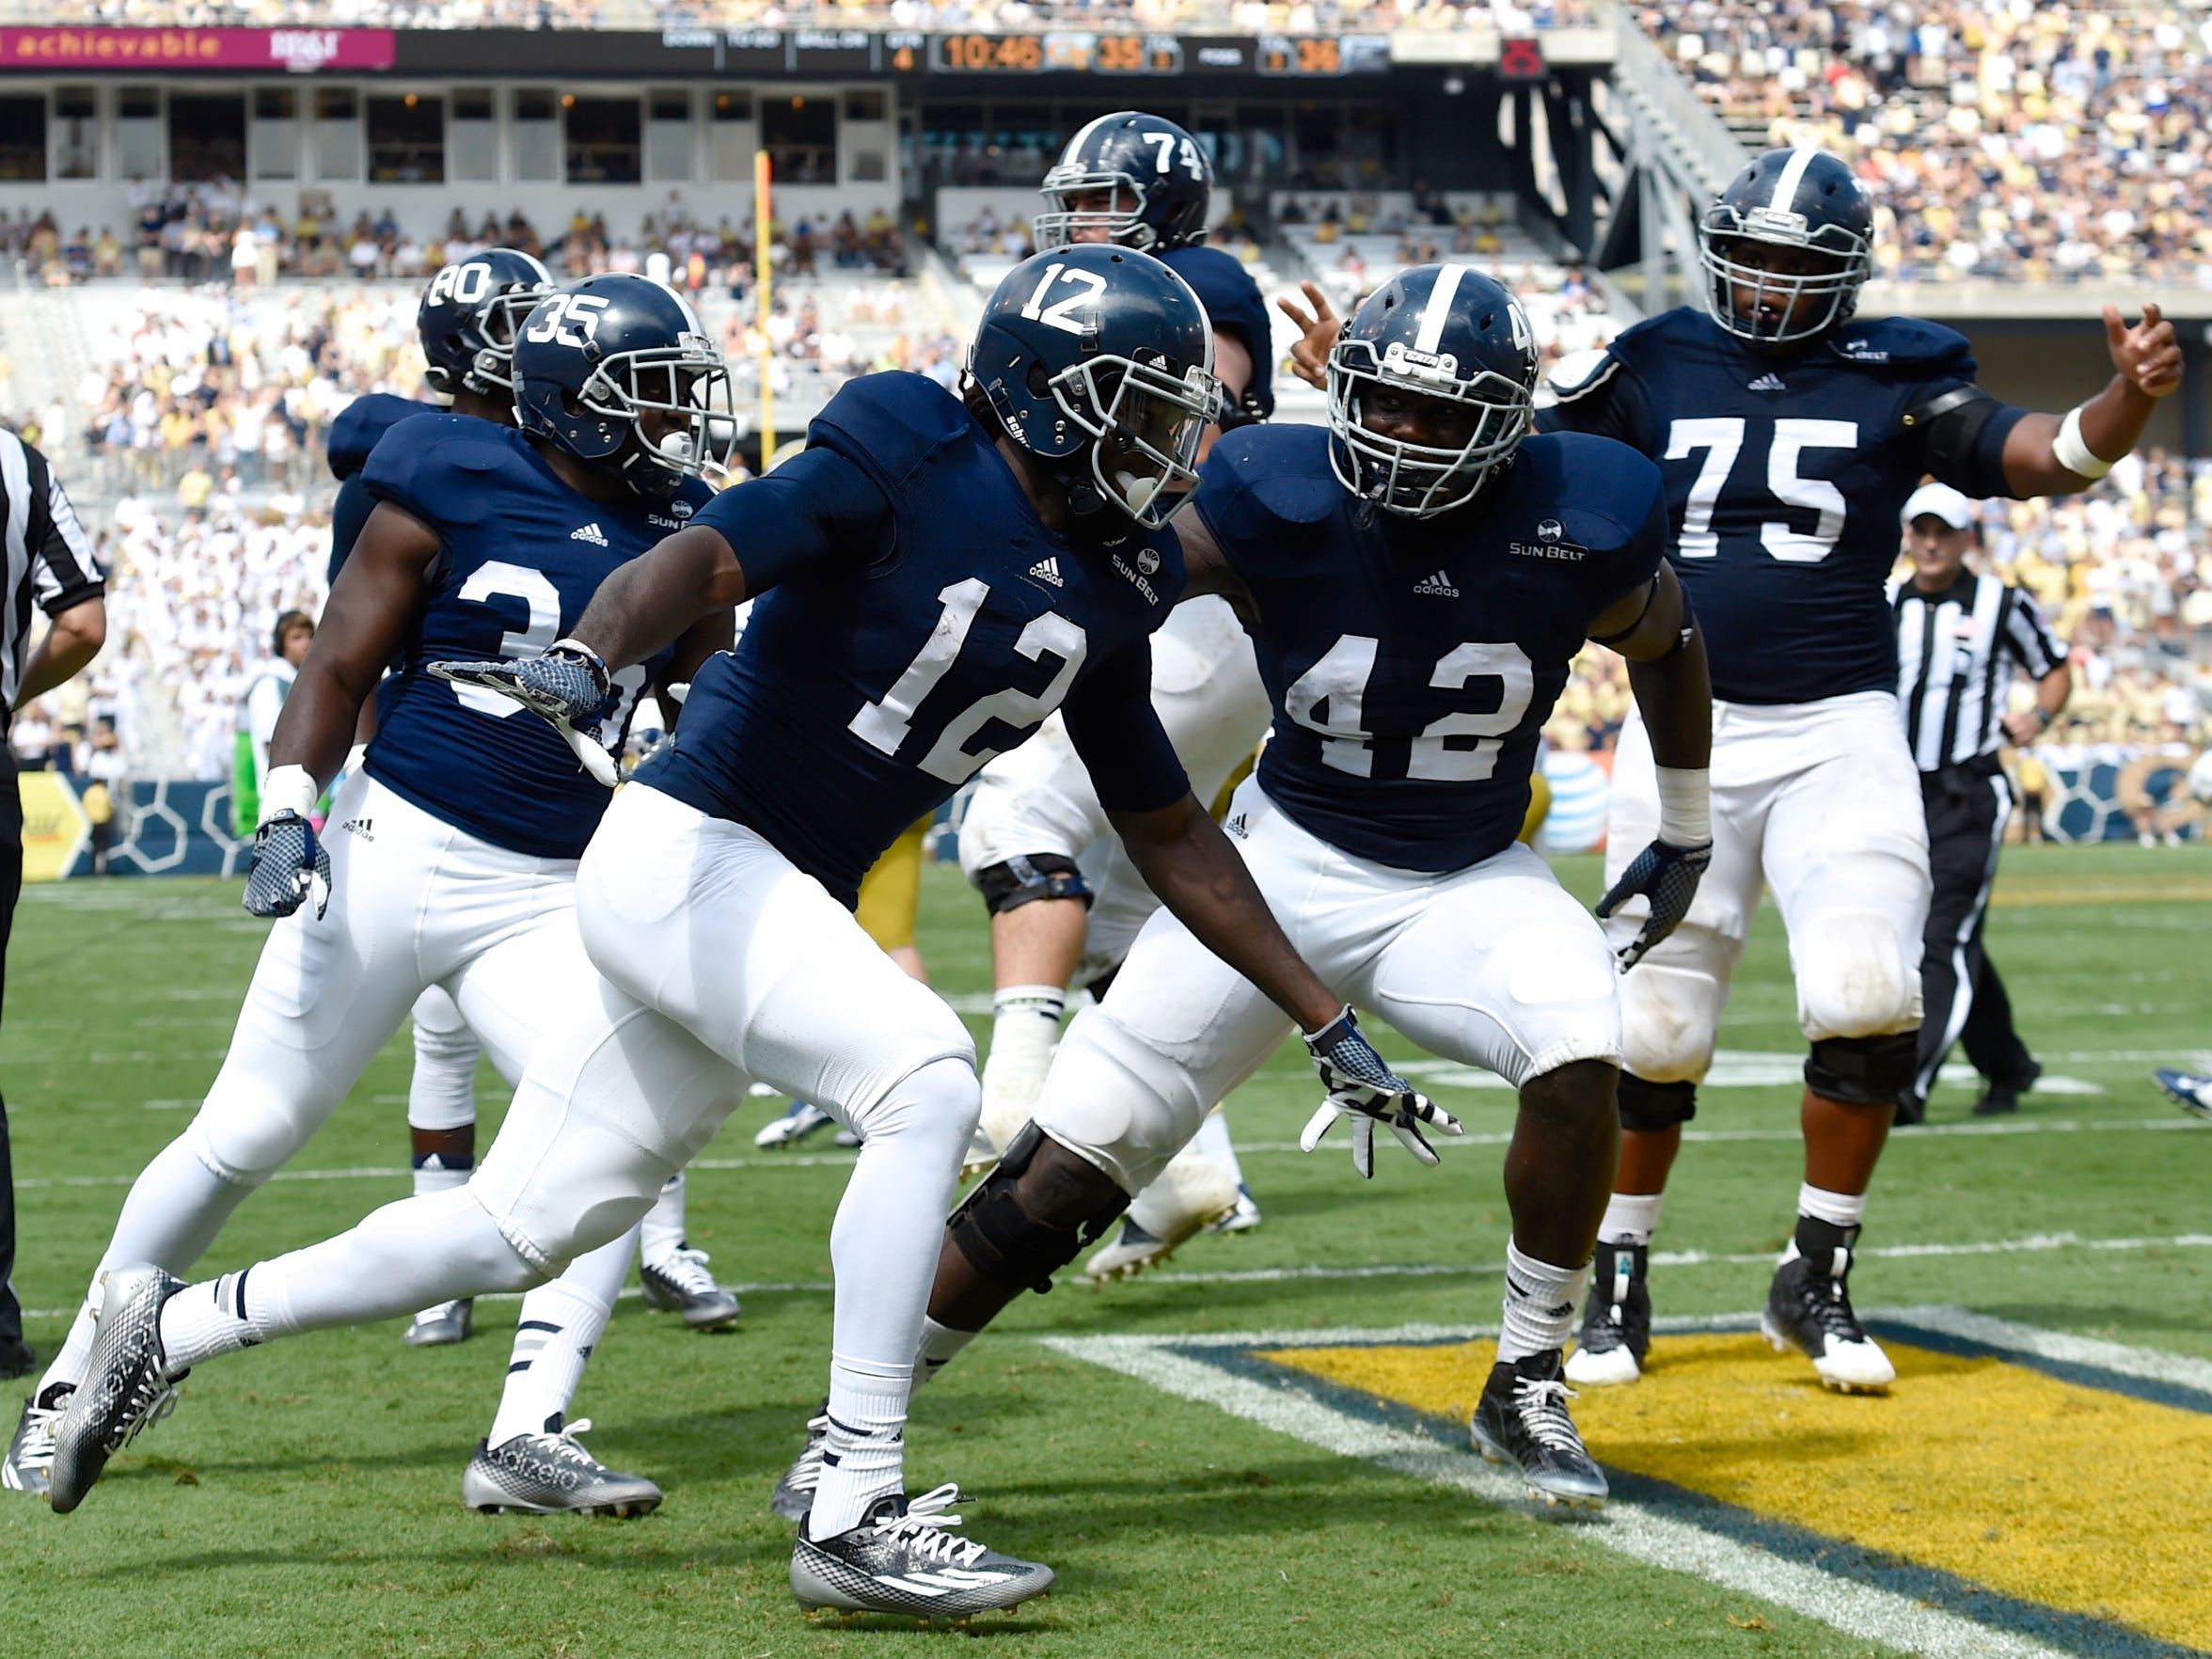 Georgia Southern Eagles wide receiver BJ Johnson (12) and his teammates have big plans for 2015.